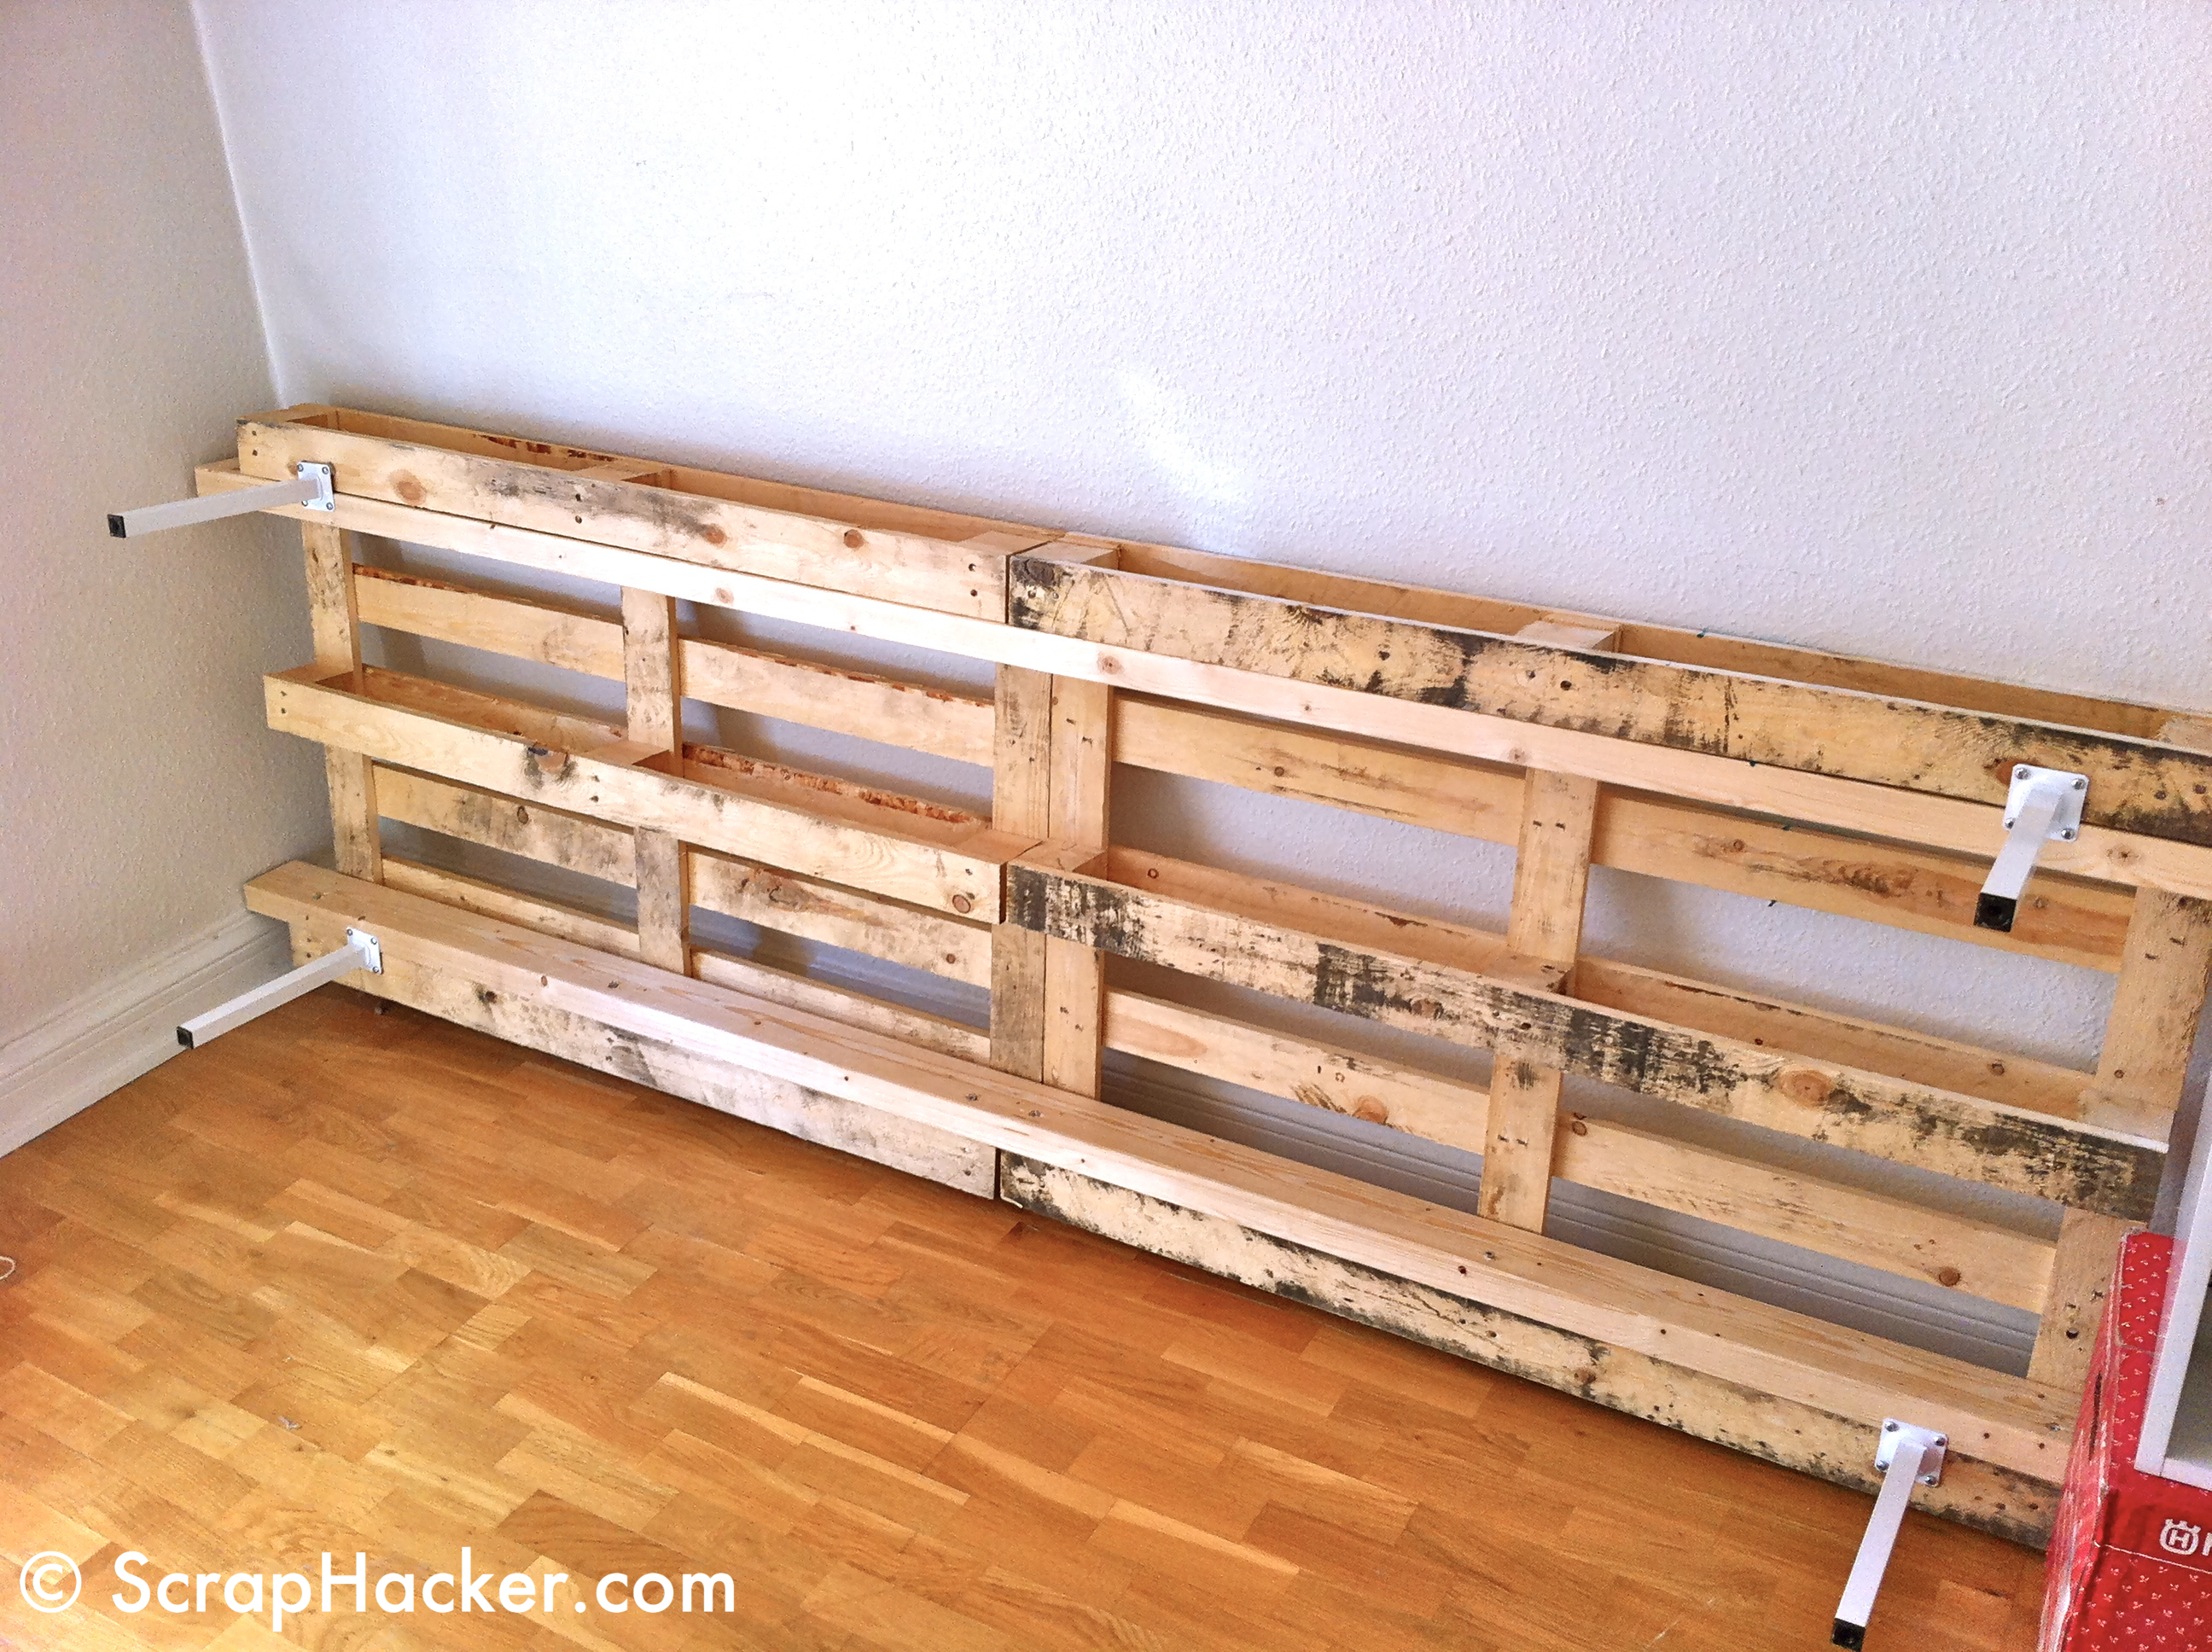 D i y lounger sofa bunk bed a 10 step tutorial - Sofas con palets ...